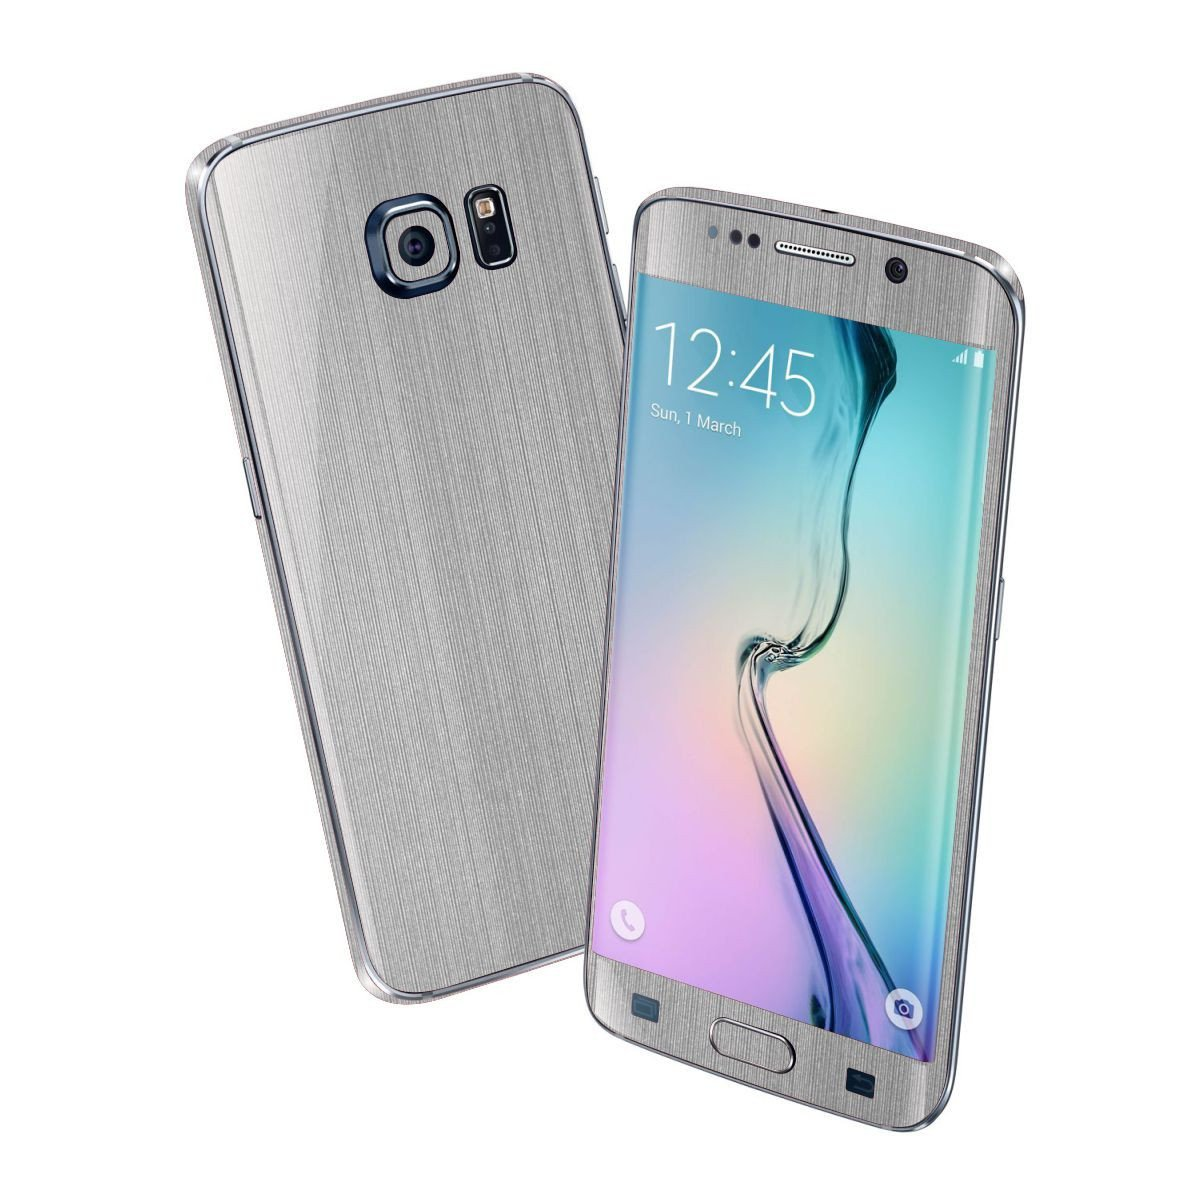 Samsung Galaxy S6 EDGE Premium Brushed Steel Silver Skin Wrap Sticker Cover Decal Protector by EasySkinz